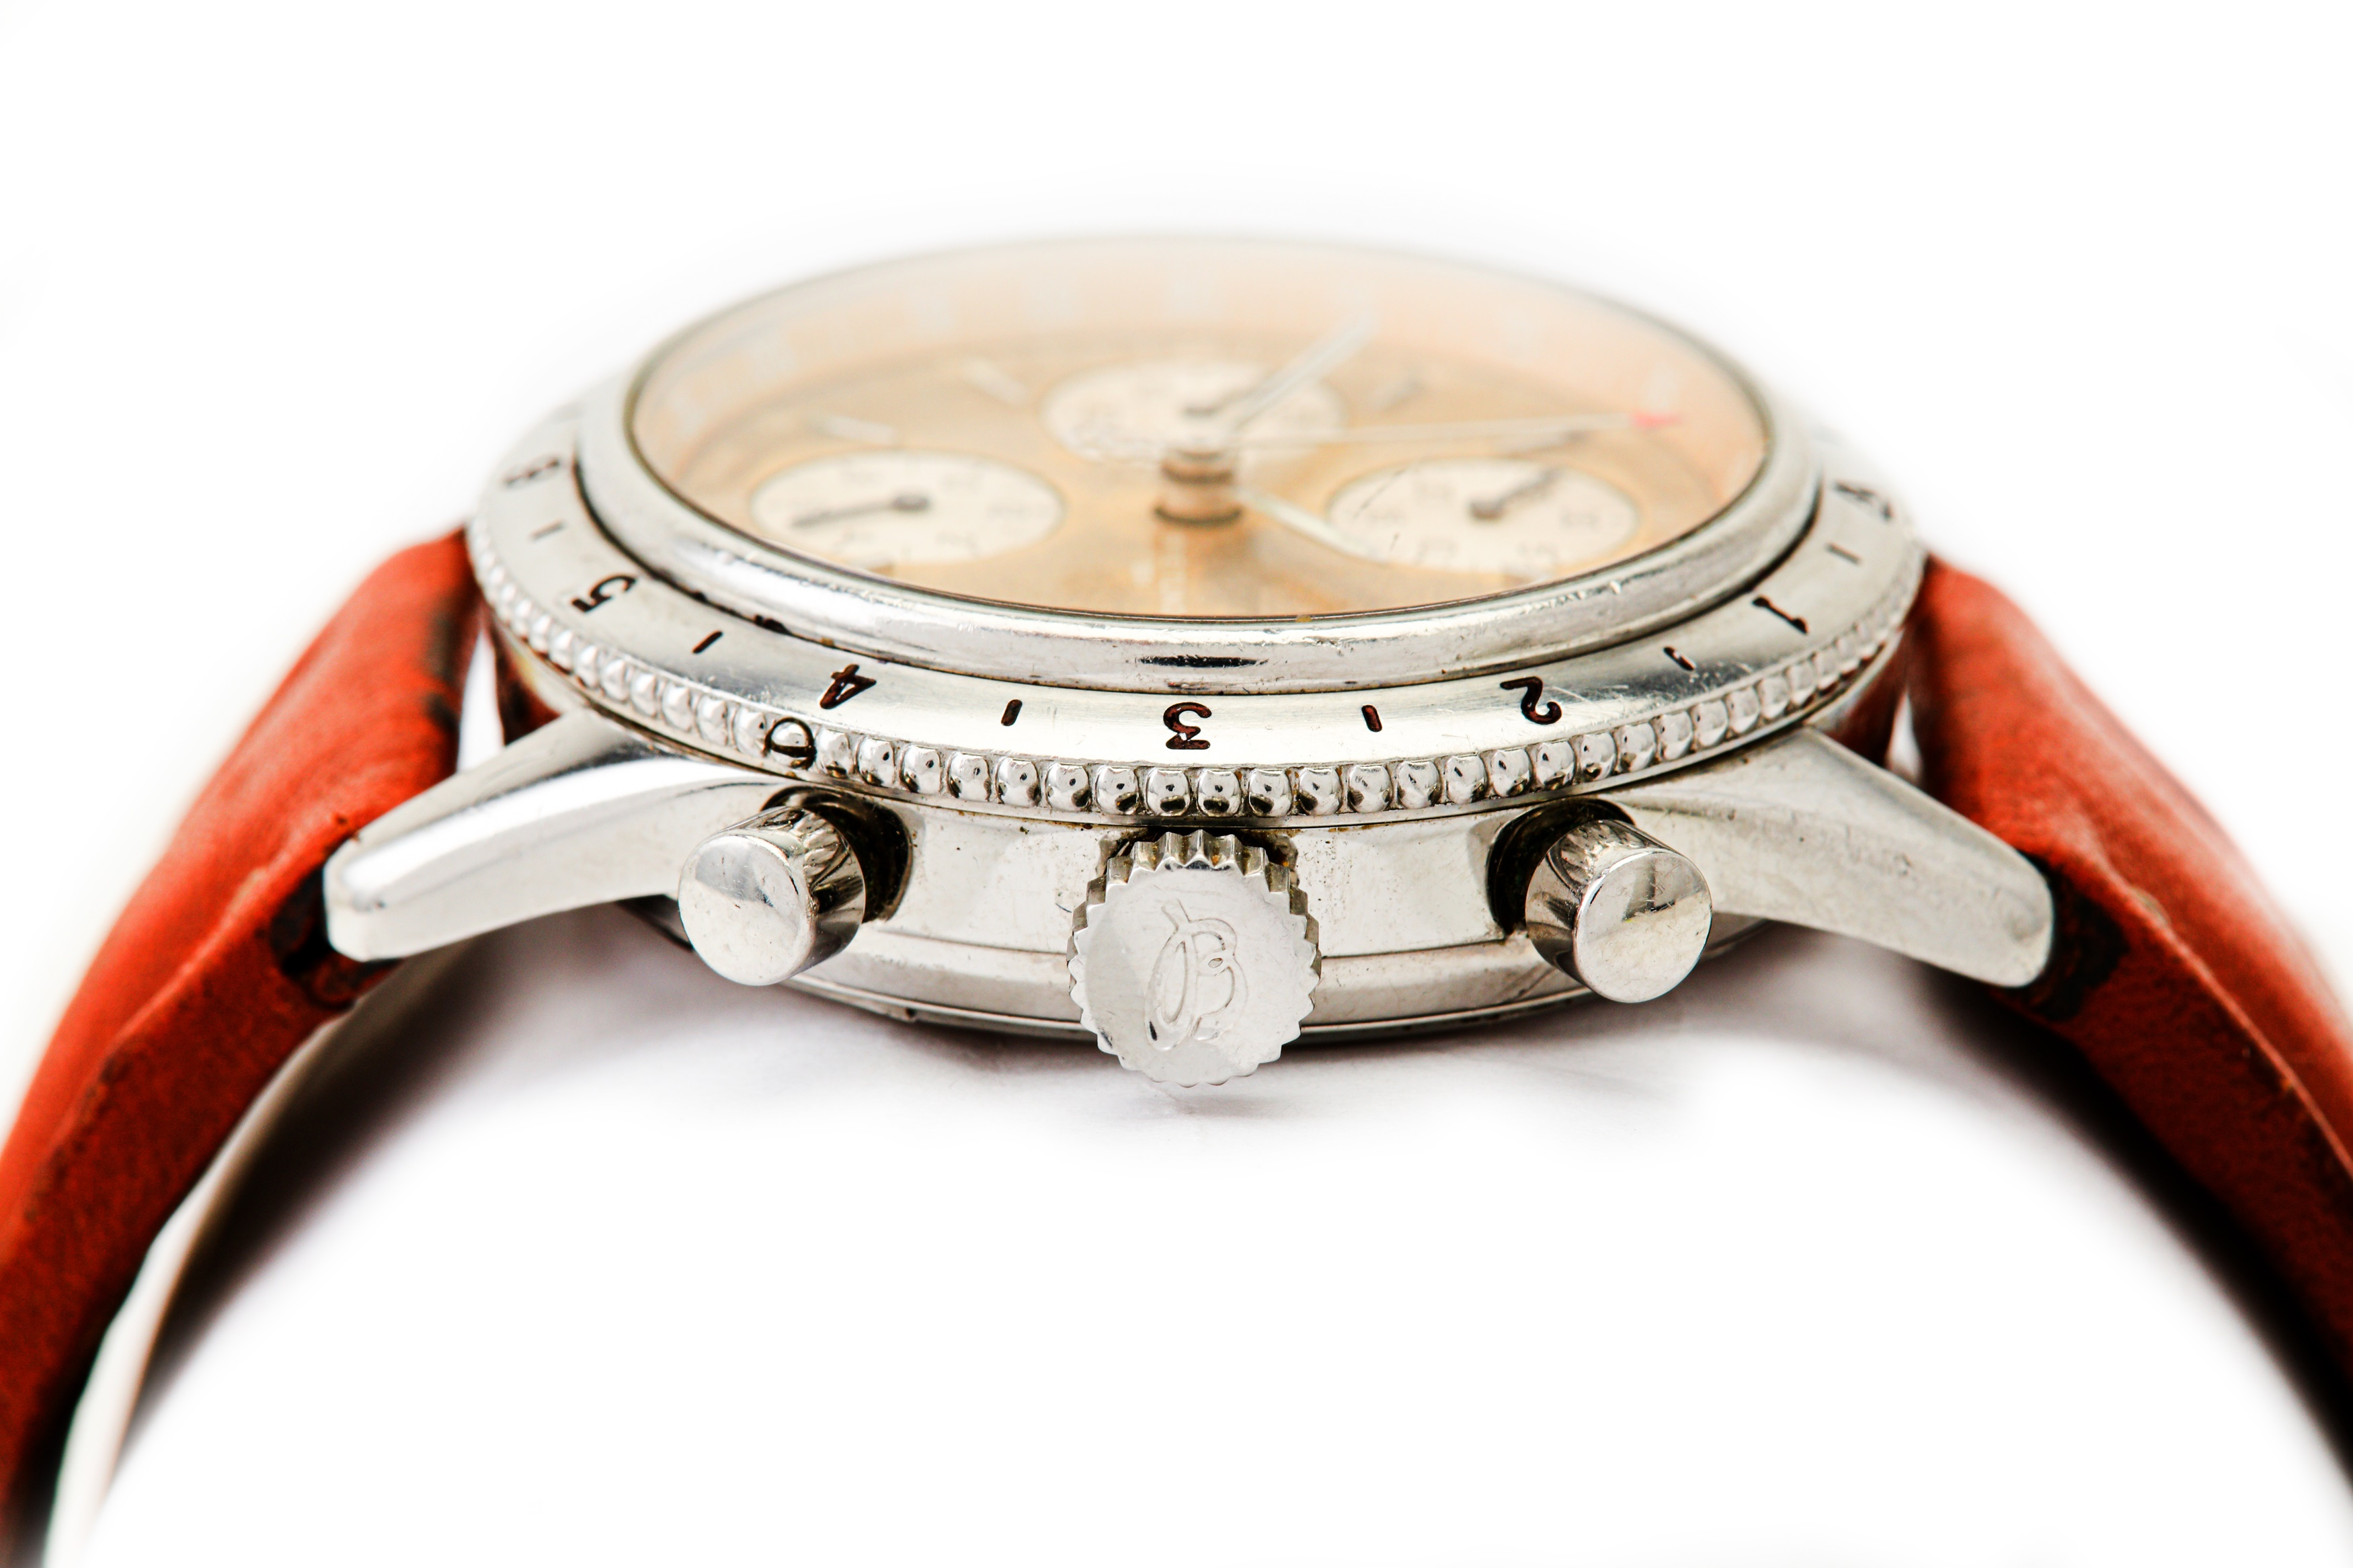 BREITLING. - Image 3 of 4